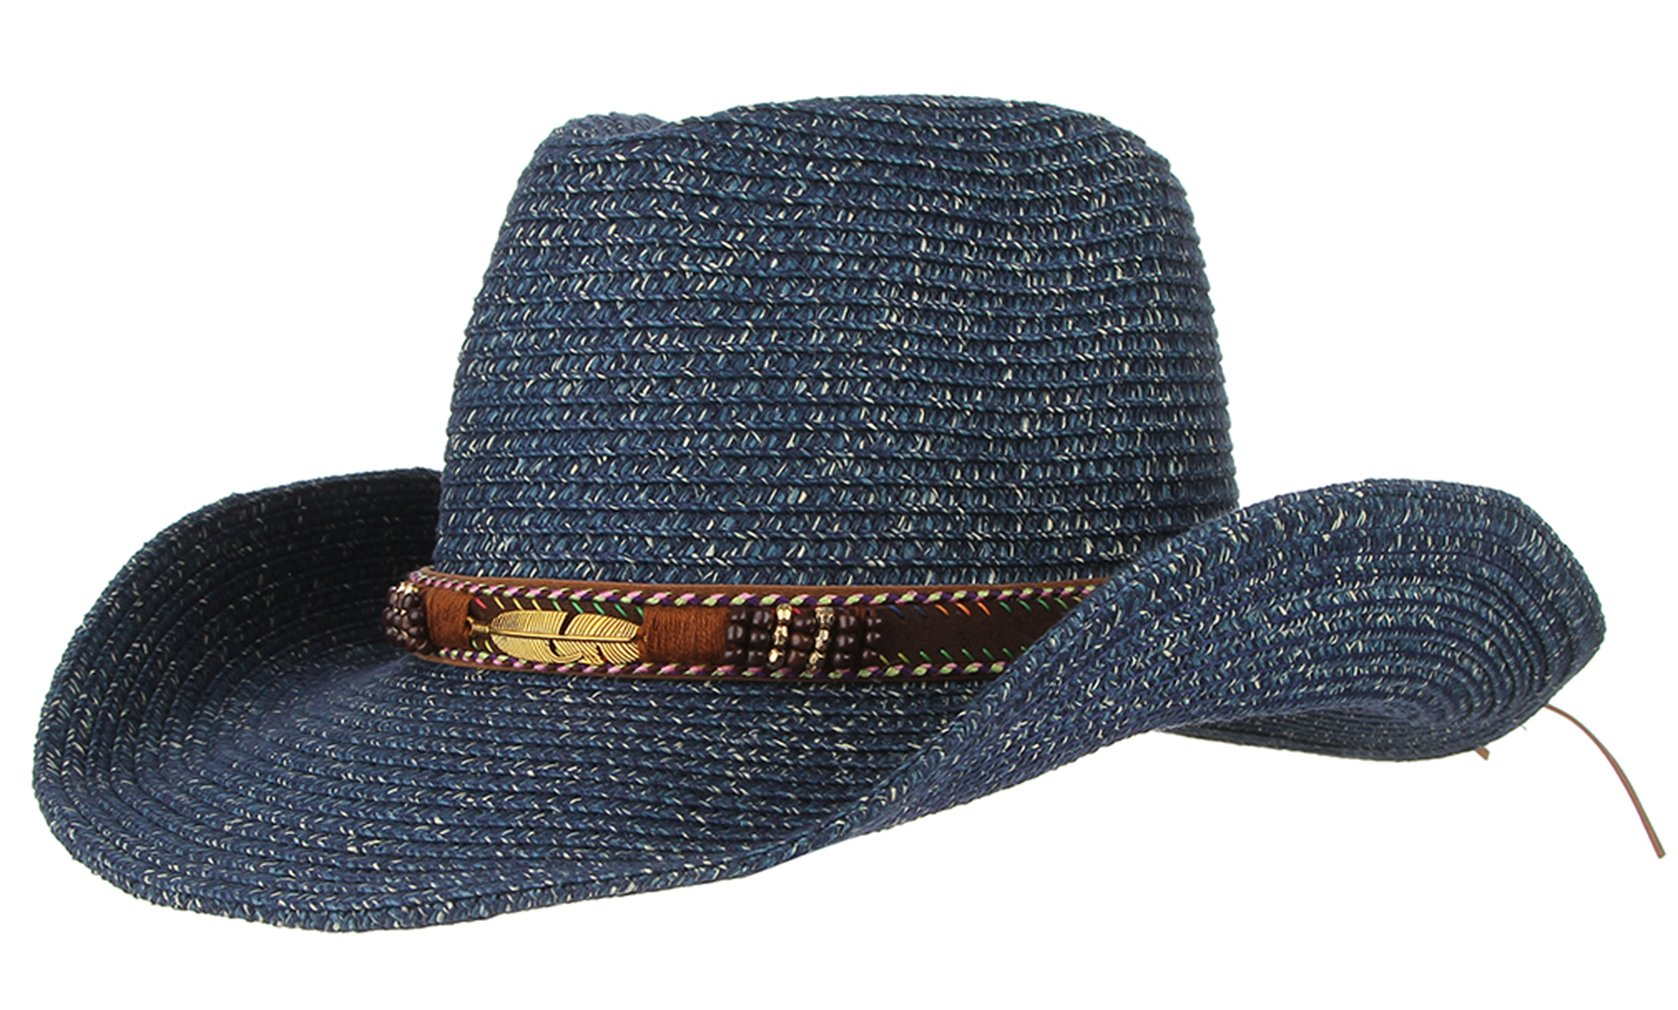 Gemvie Cowboy Hat Floppy Sun Hat Straw Summer Beach Cap Wide Brim Straw Hats Blue